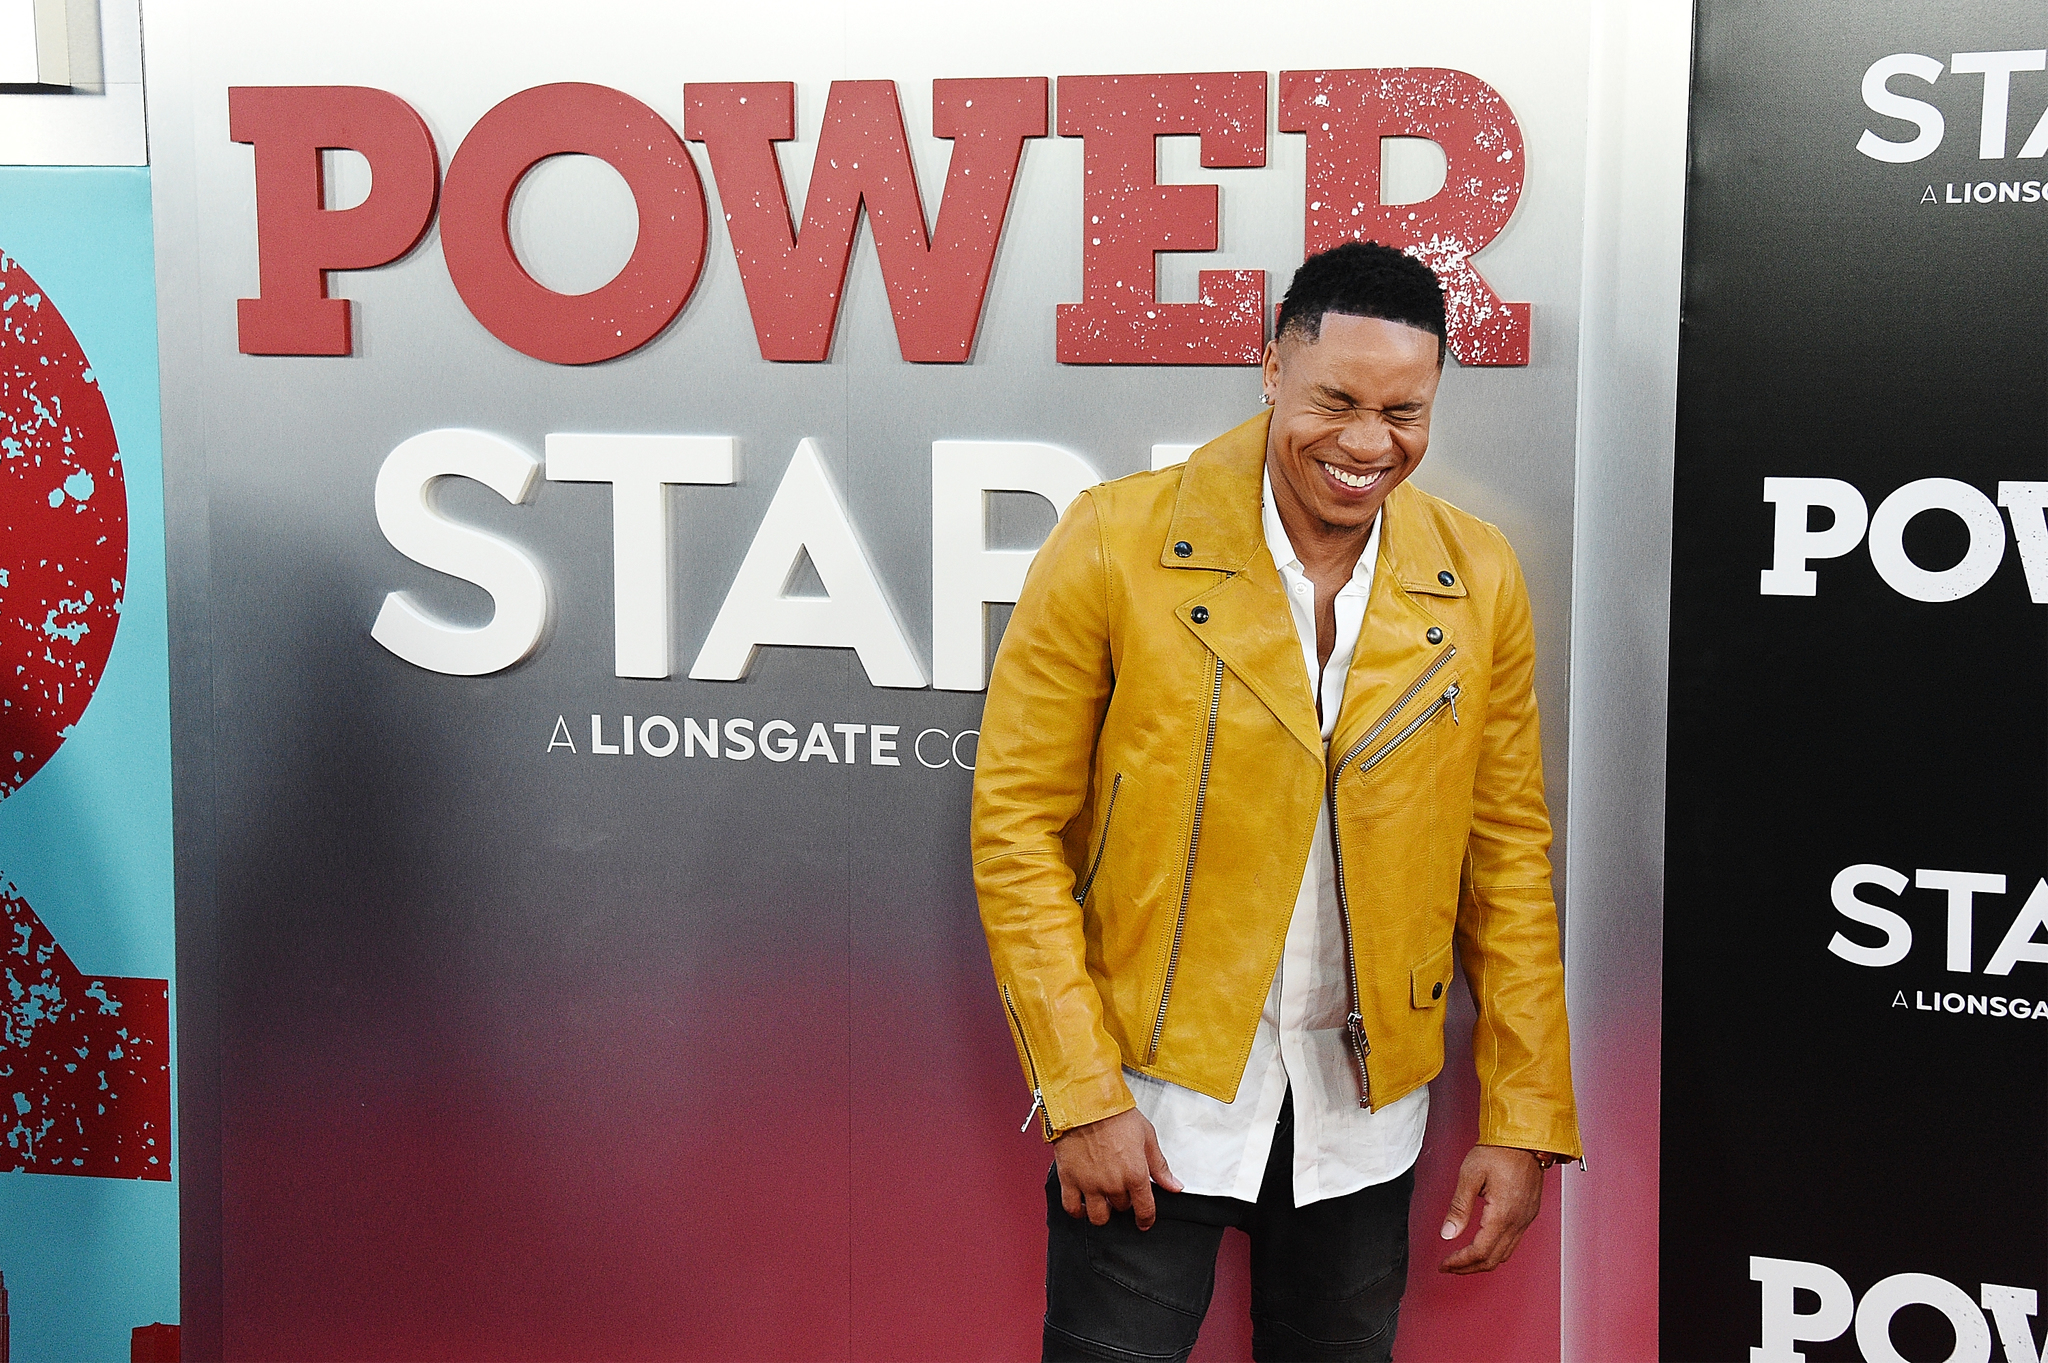 Rotimi at an event for Power (2014)